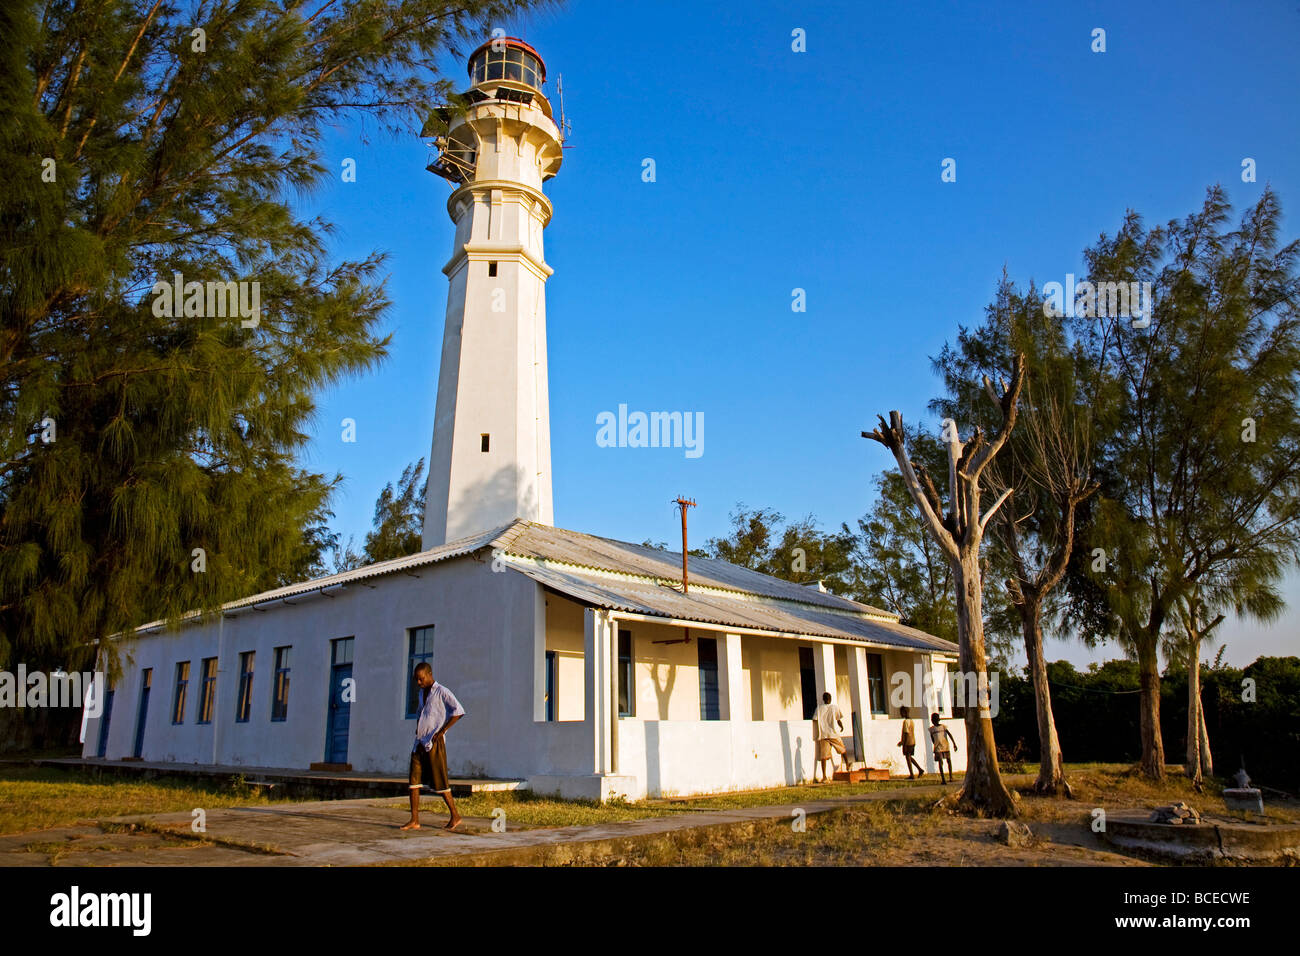 Mozambique, Inhaca Island. The Northern Lighthouse at sunset on Inhaca Island. Stock Photo